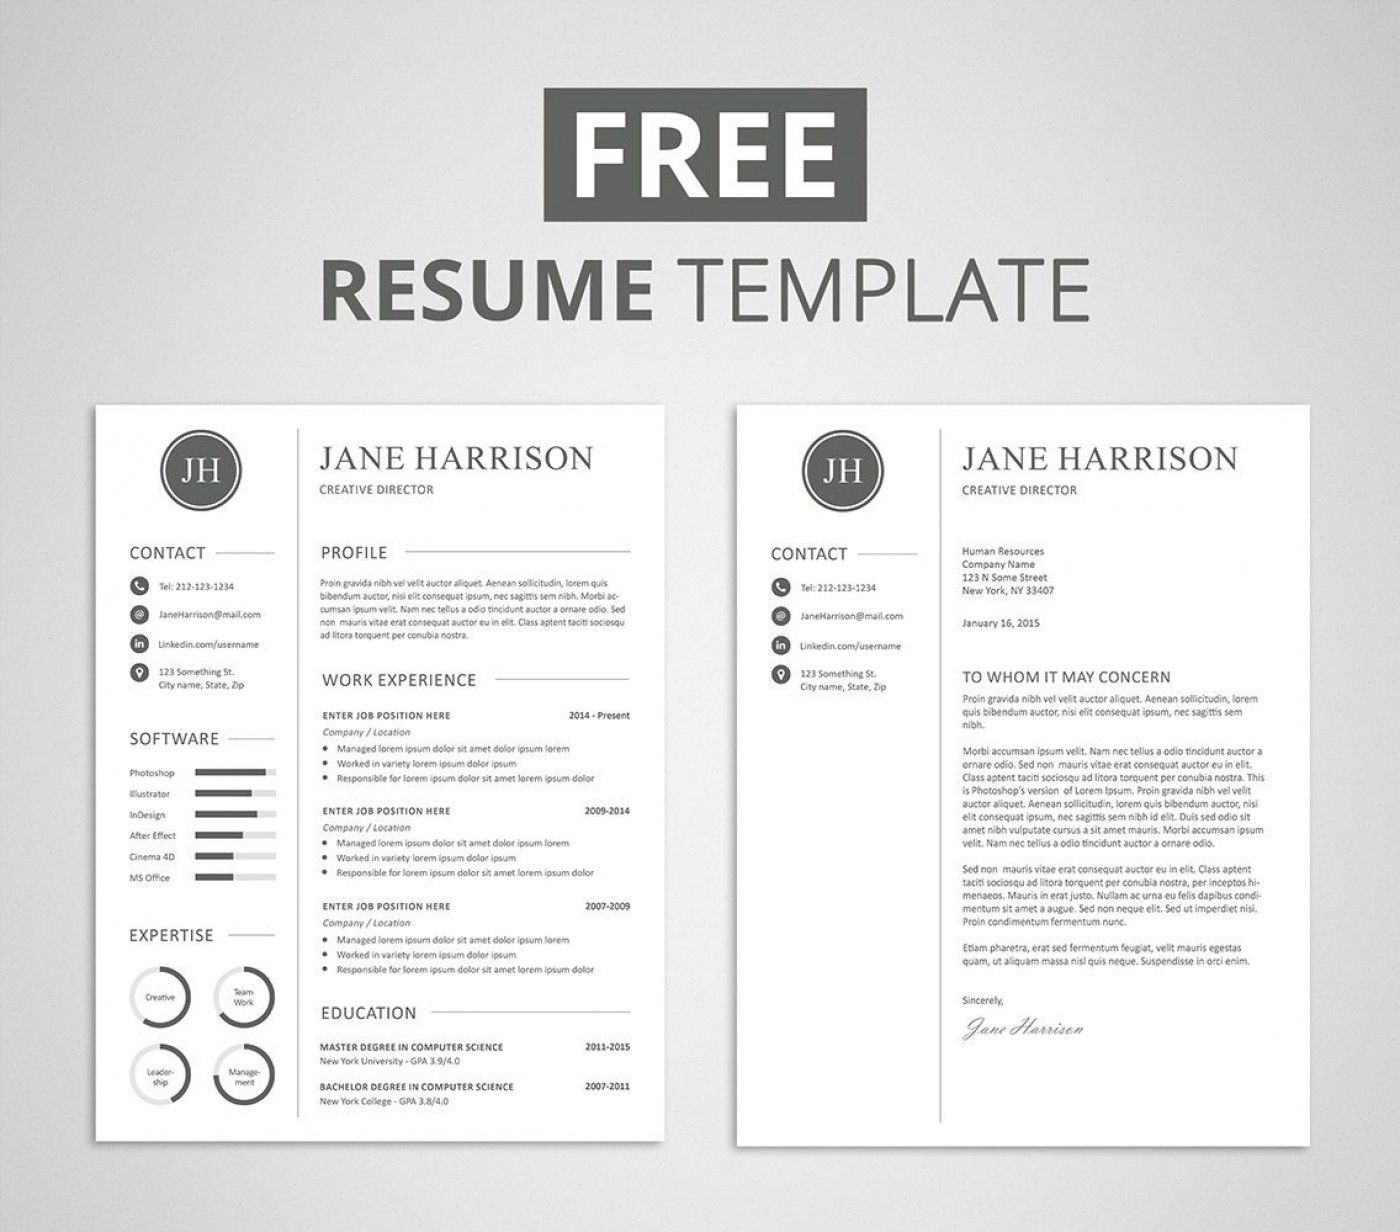 009 Unforgettable Resume Cover Letter Template Free High Def  Simple Online Microsoft1400